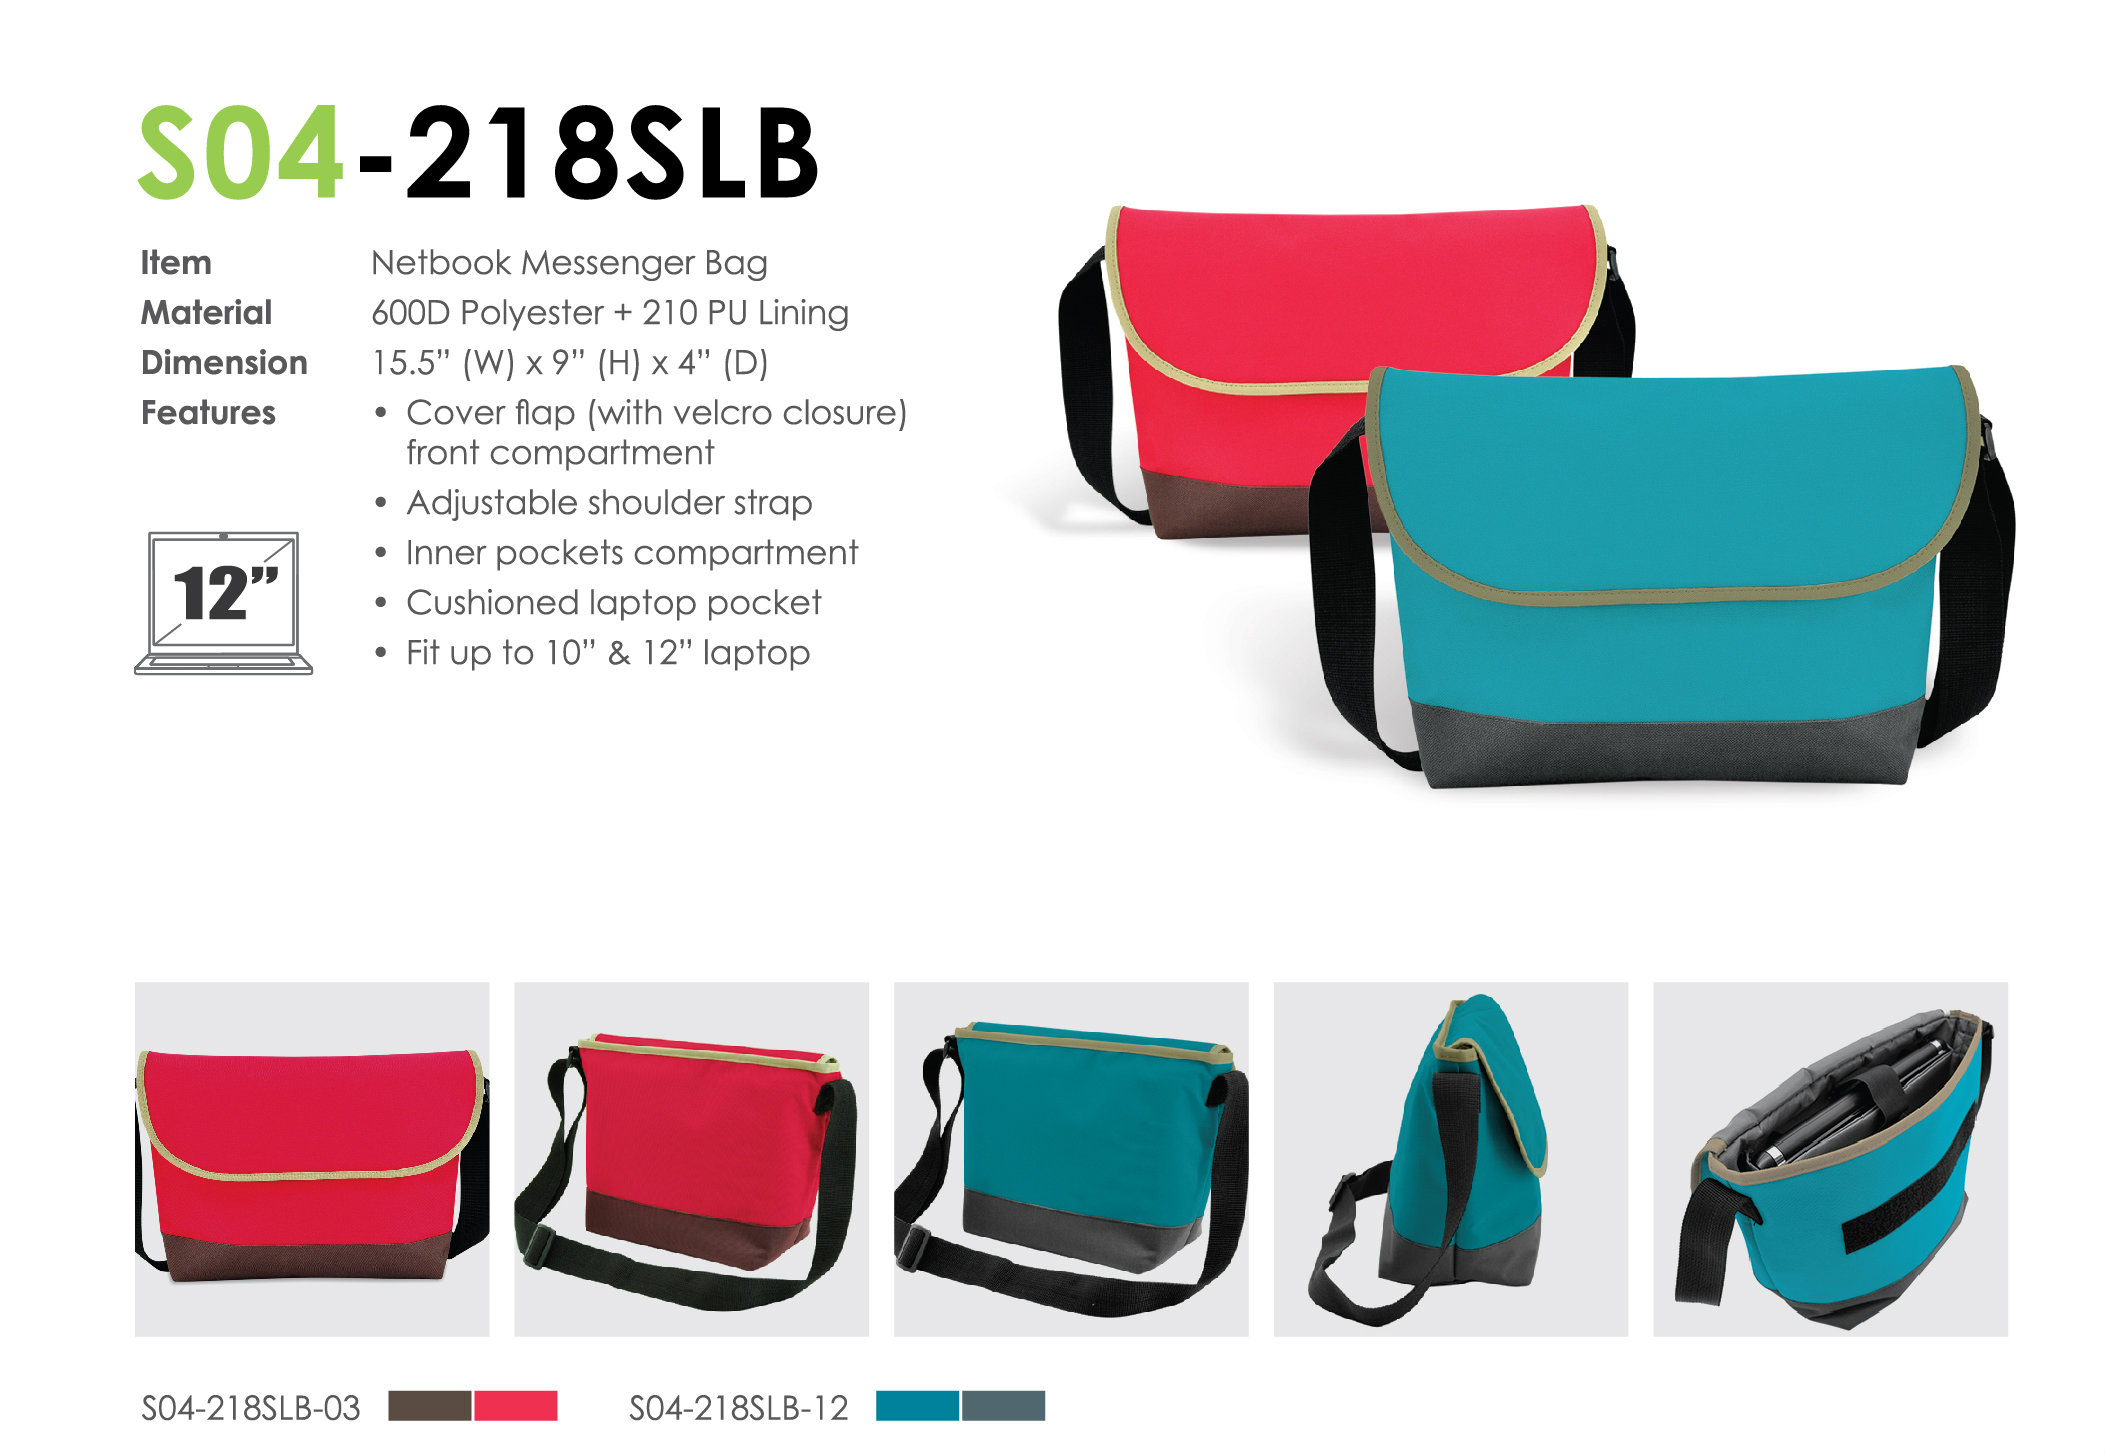 Netbook Sling Bag S04-218SLB